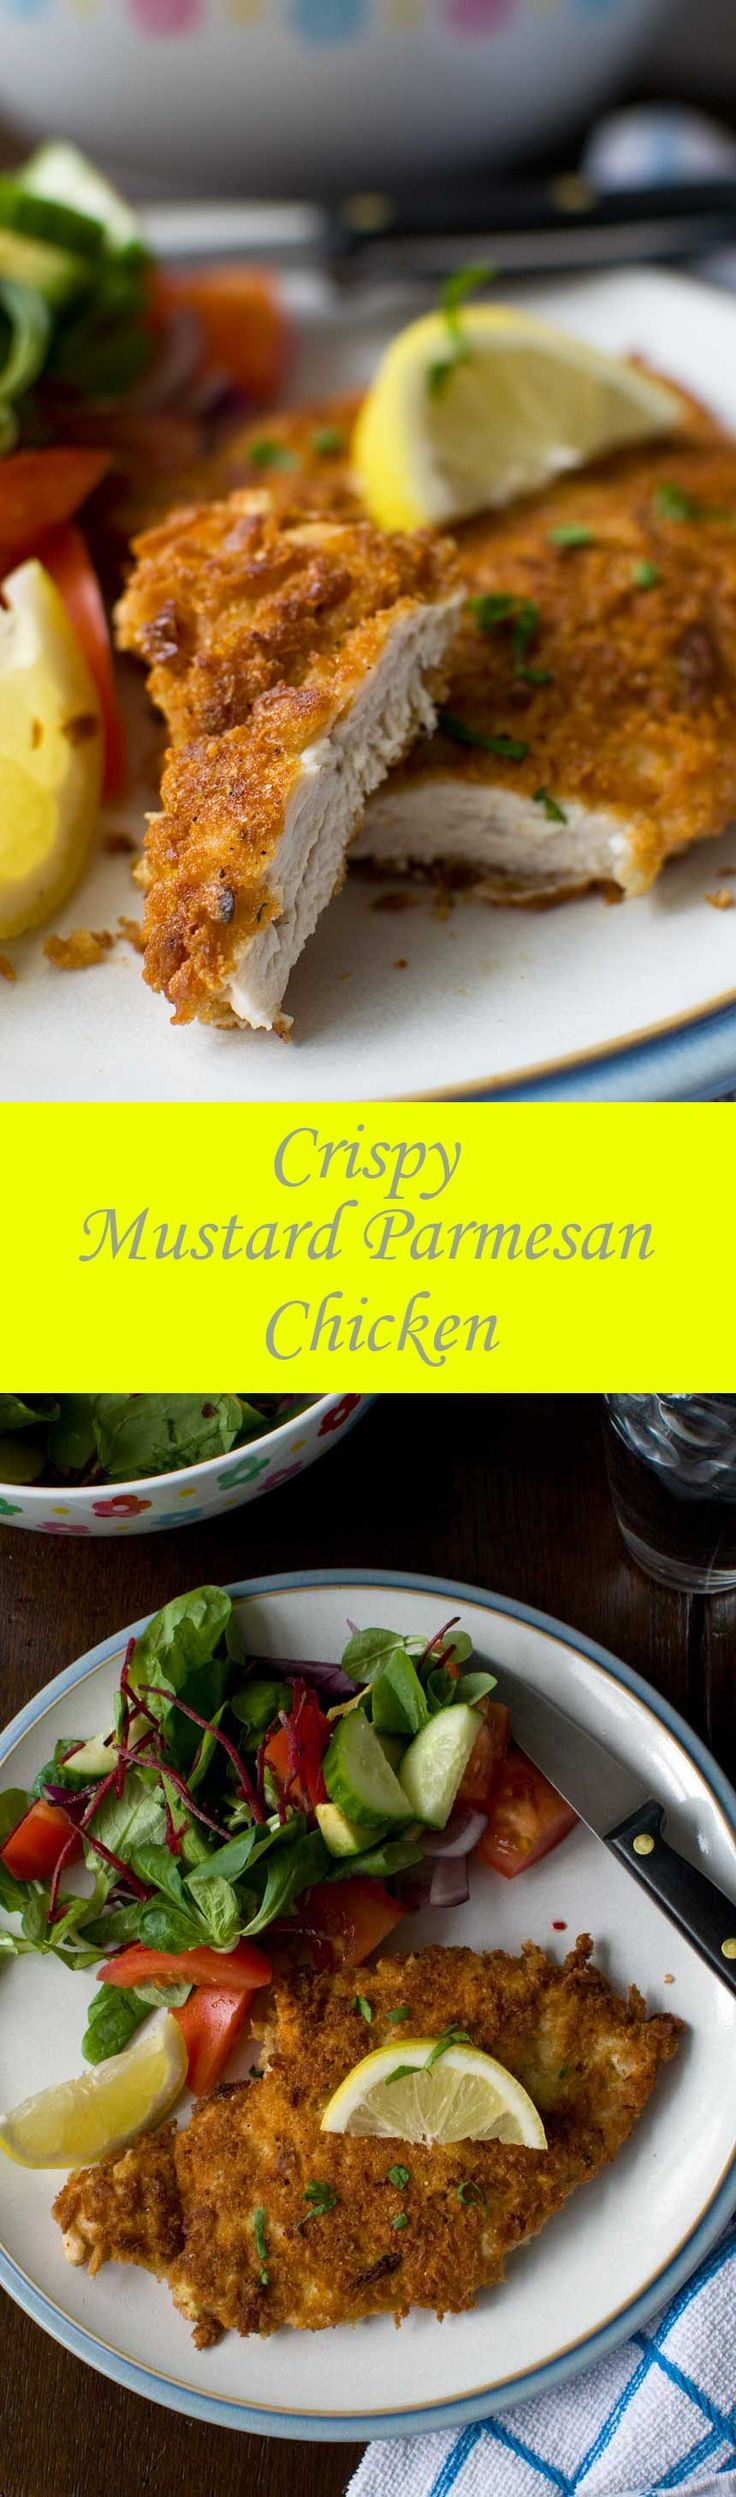 This crispy mustard parmesan chicken is like a chicken schnitzel, but tastier and easier to make! @scrummylane